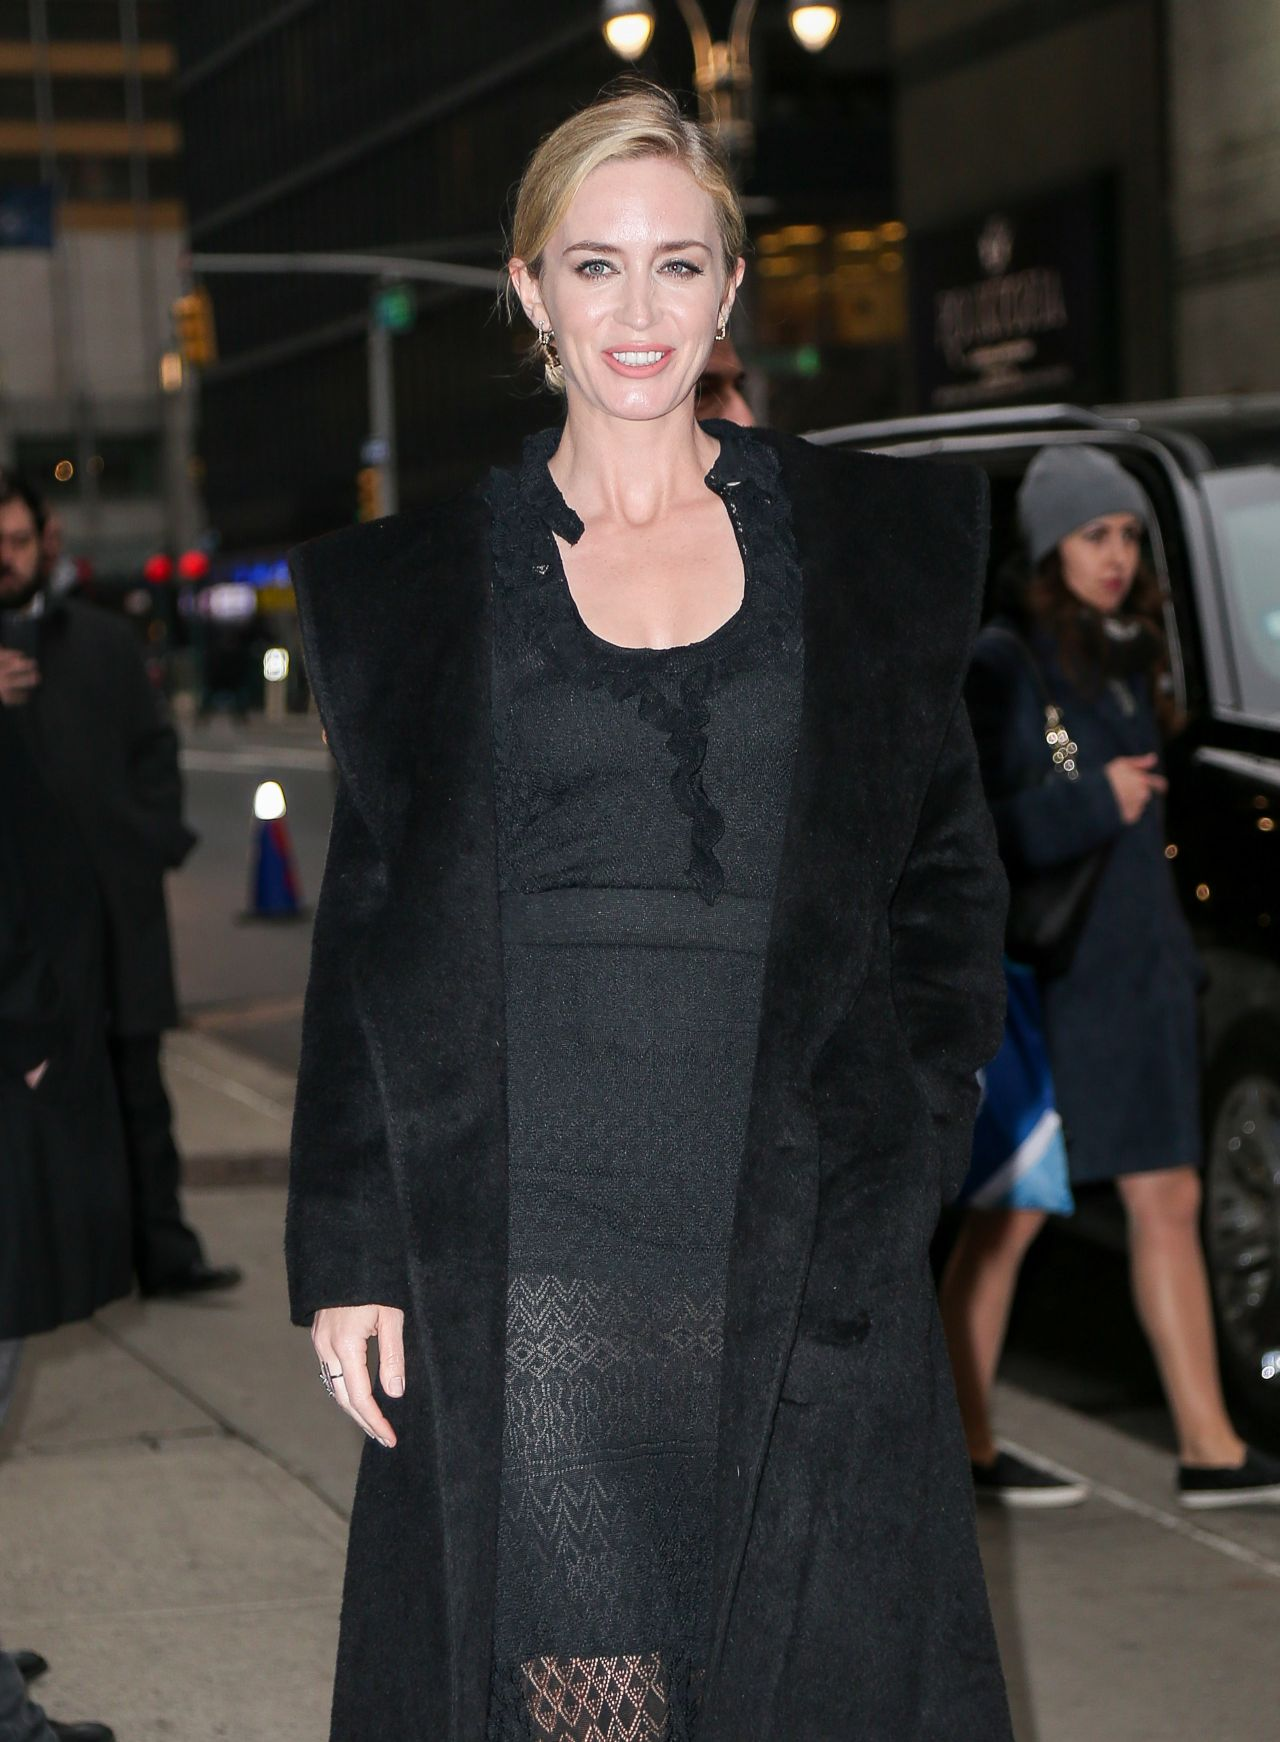 emily-blunt-outside-the-late-show-with-stephen-colbert-in-nyc-03-29-2018-2.jpg